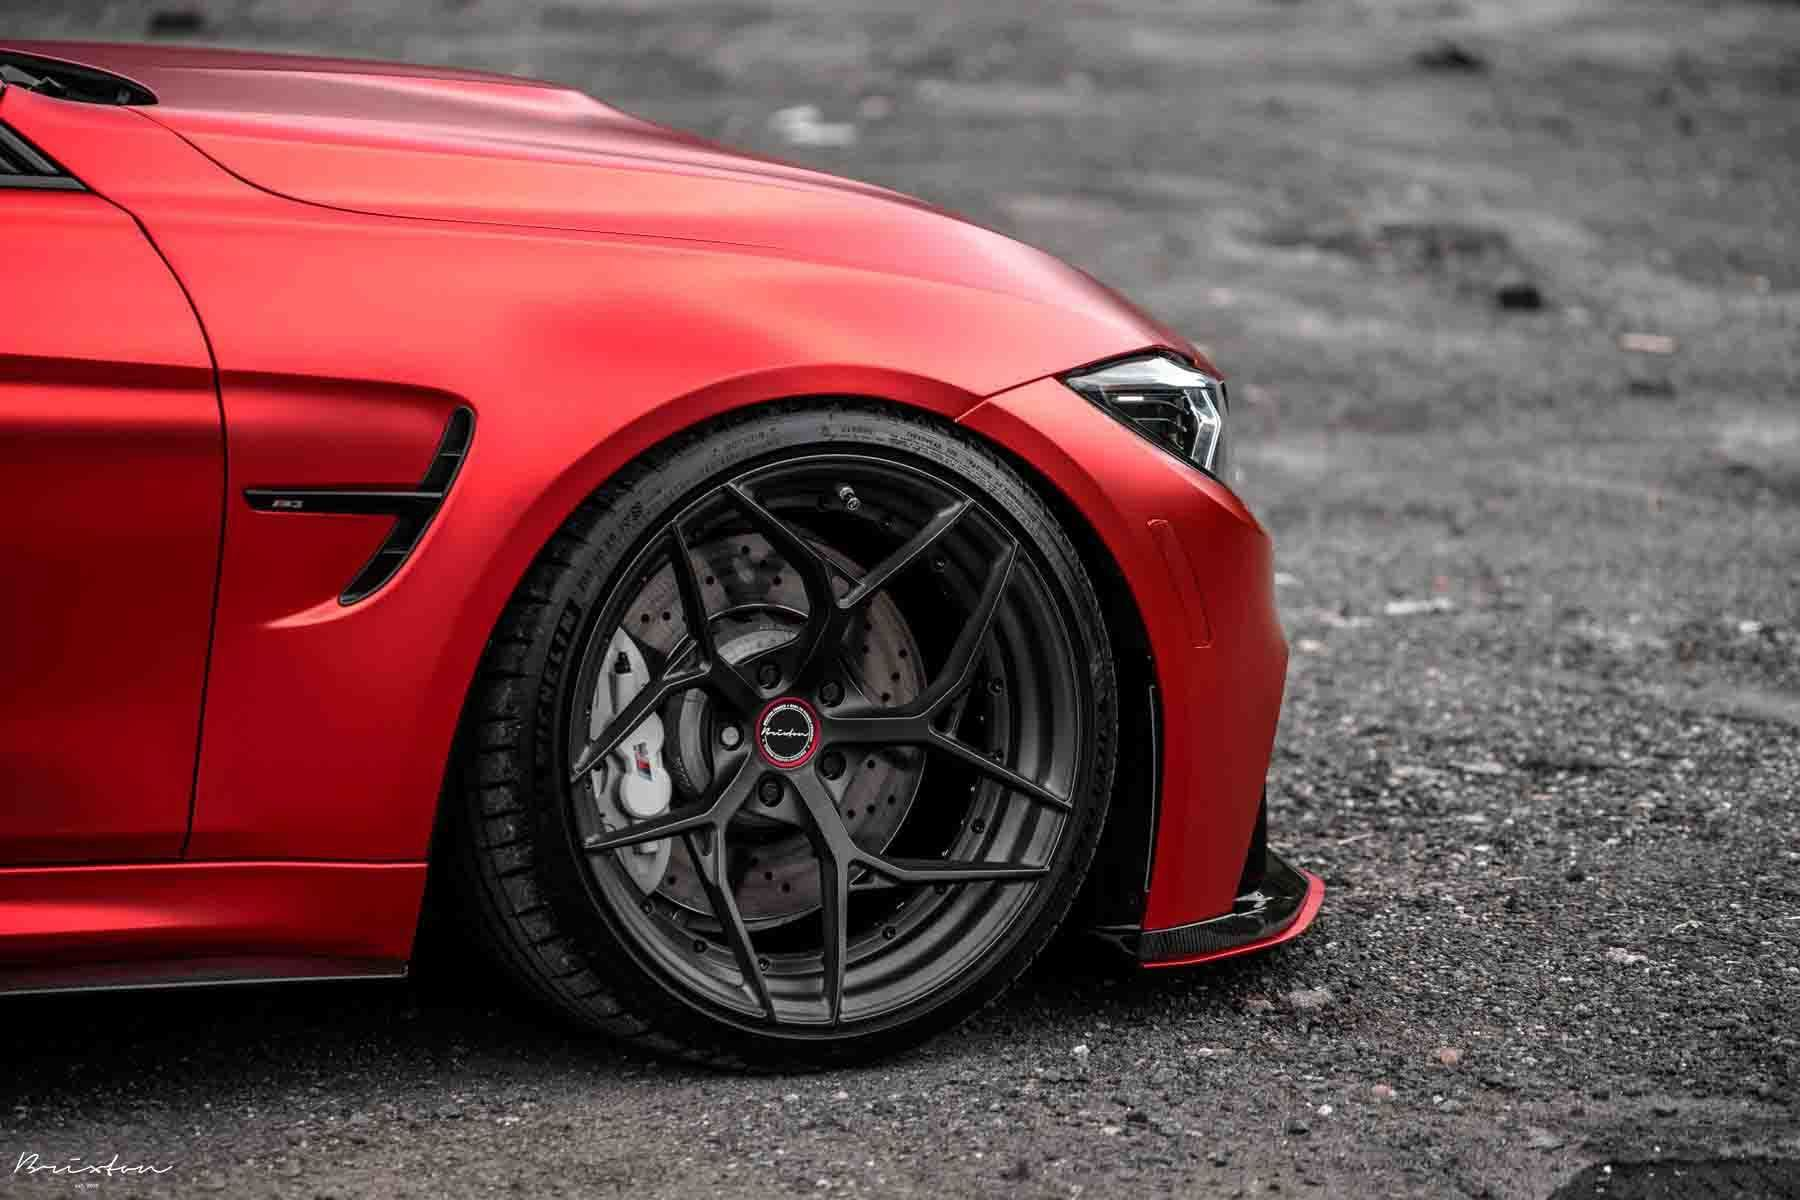 images-products-1-1779-232974067-red-bmw-f80-m3-brixton-forged-pf5-duo-series-forged-wheels-concave-20-brushed-smoke-black-7-1800.jpg